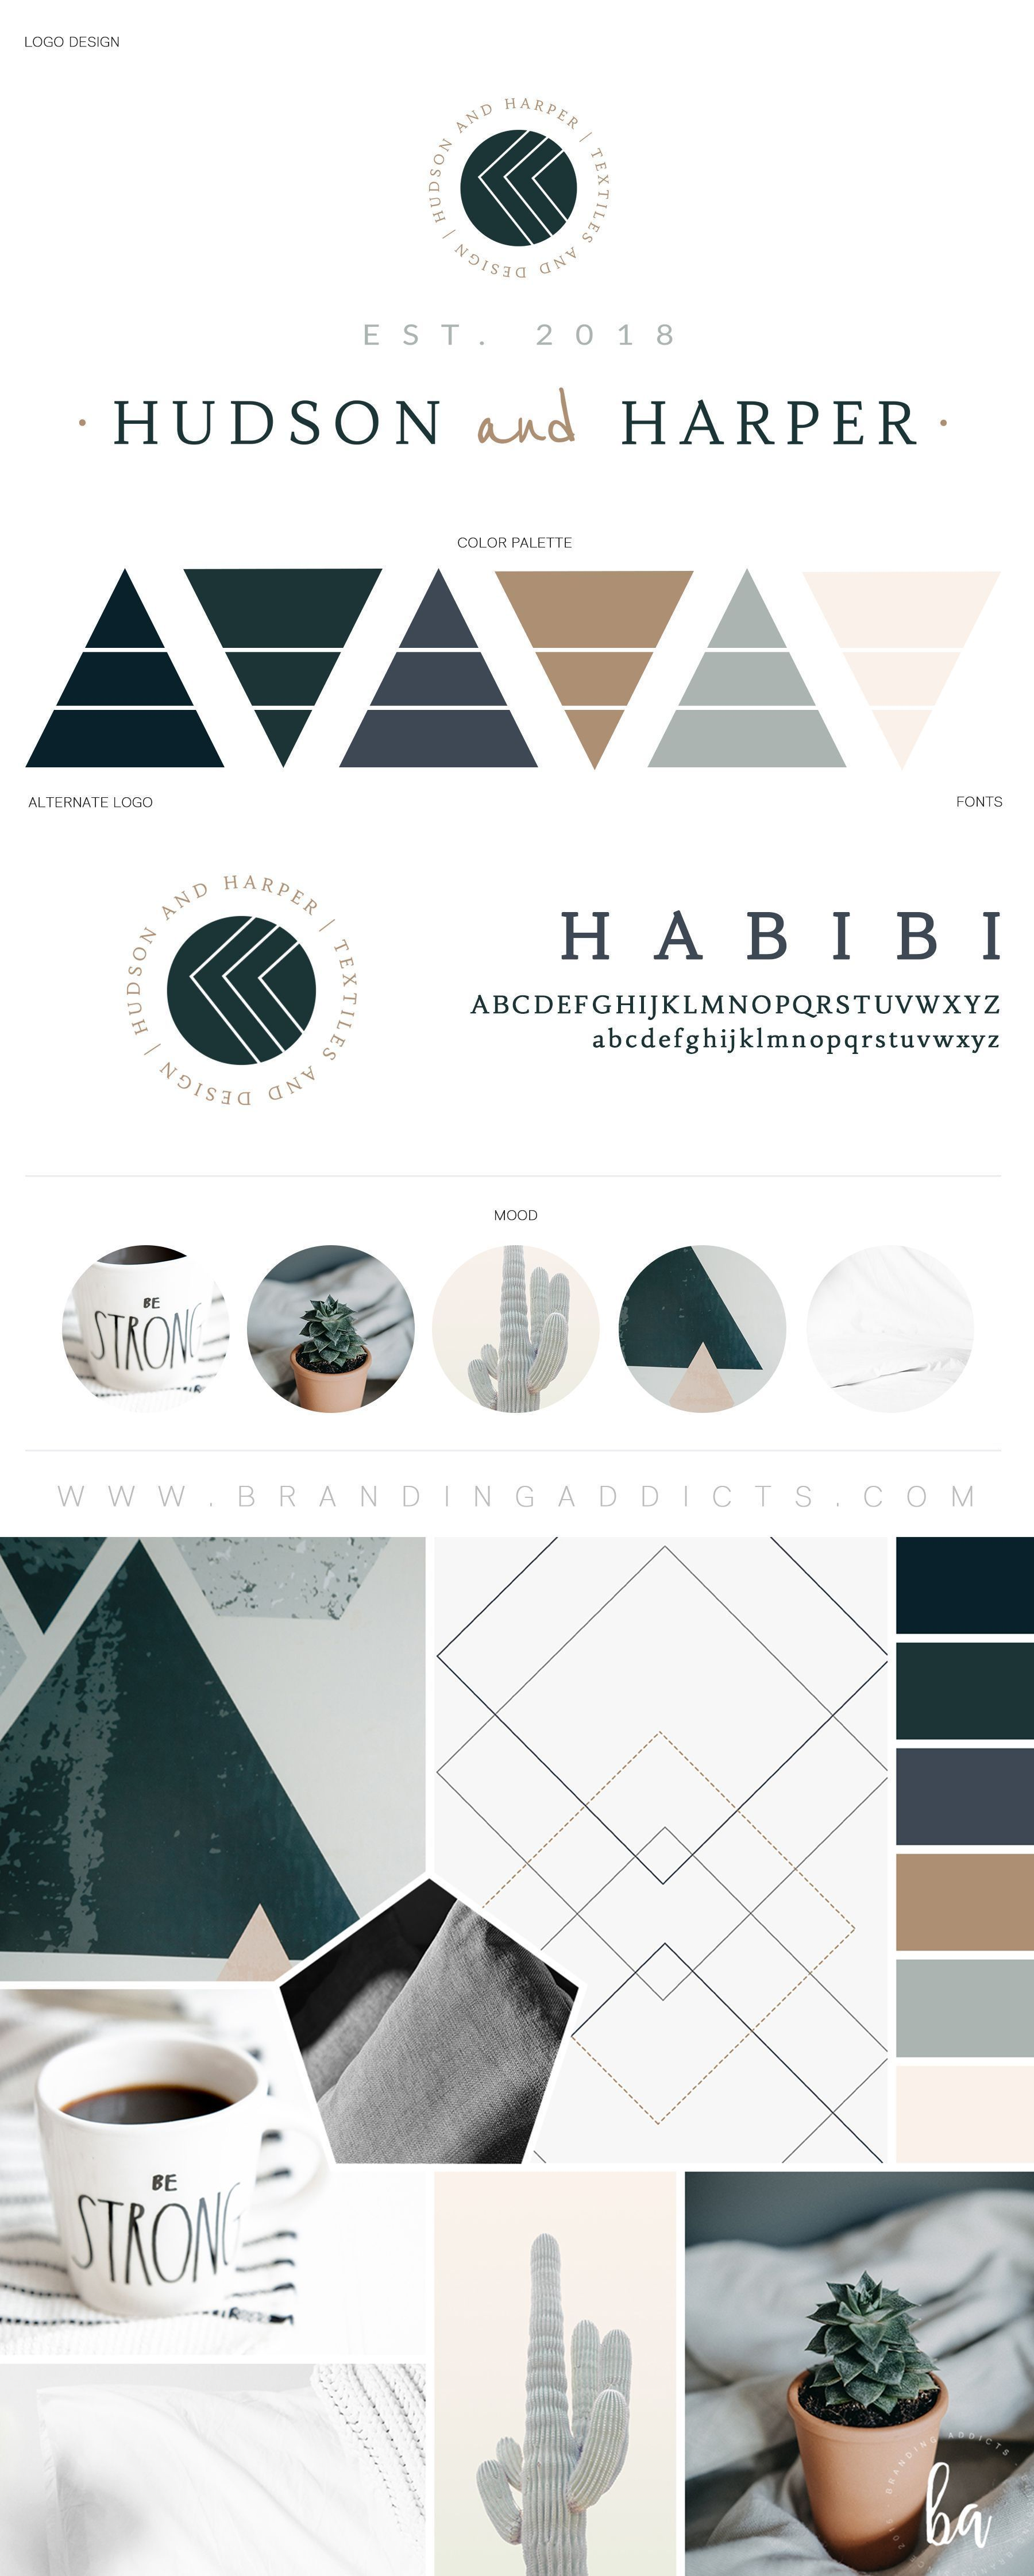 Fresh Brand Design For A Luxury Textiles And Design Business